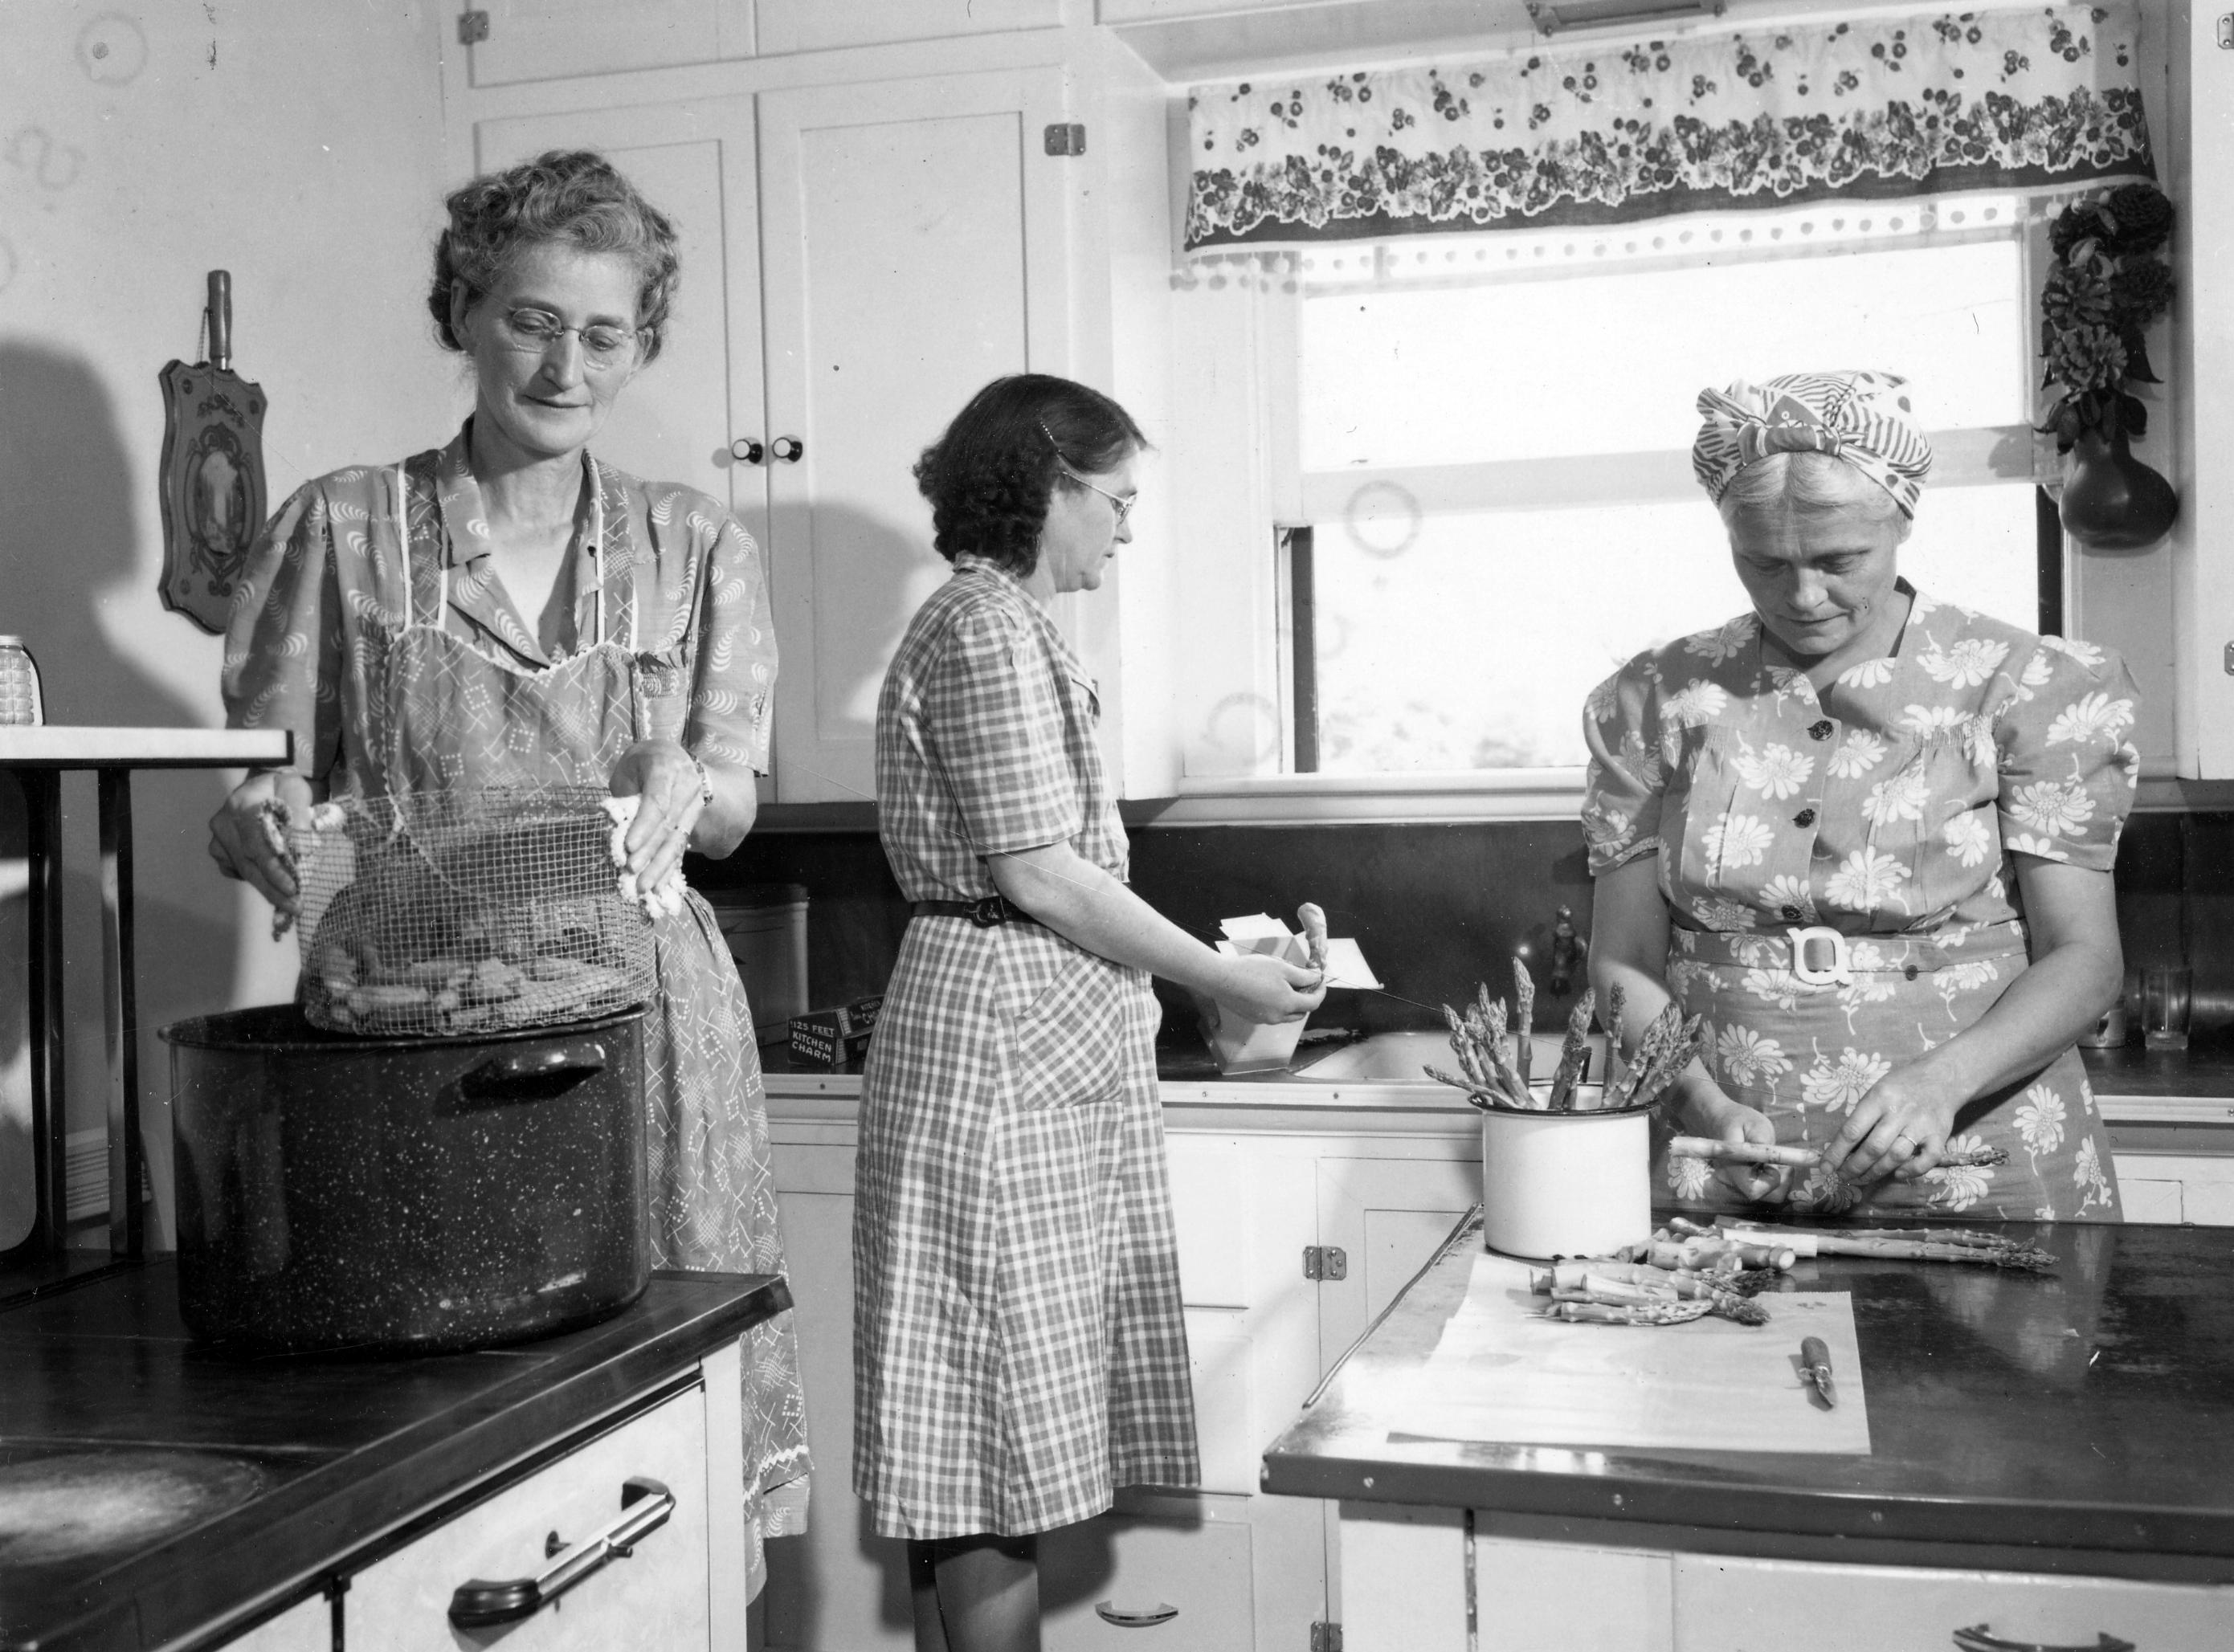 Frankfurter Küche Wiki File Women In Kitchen Preparing Food Circa 1945